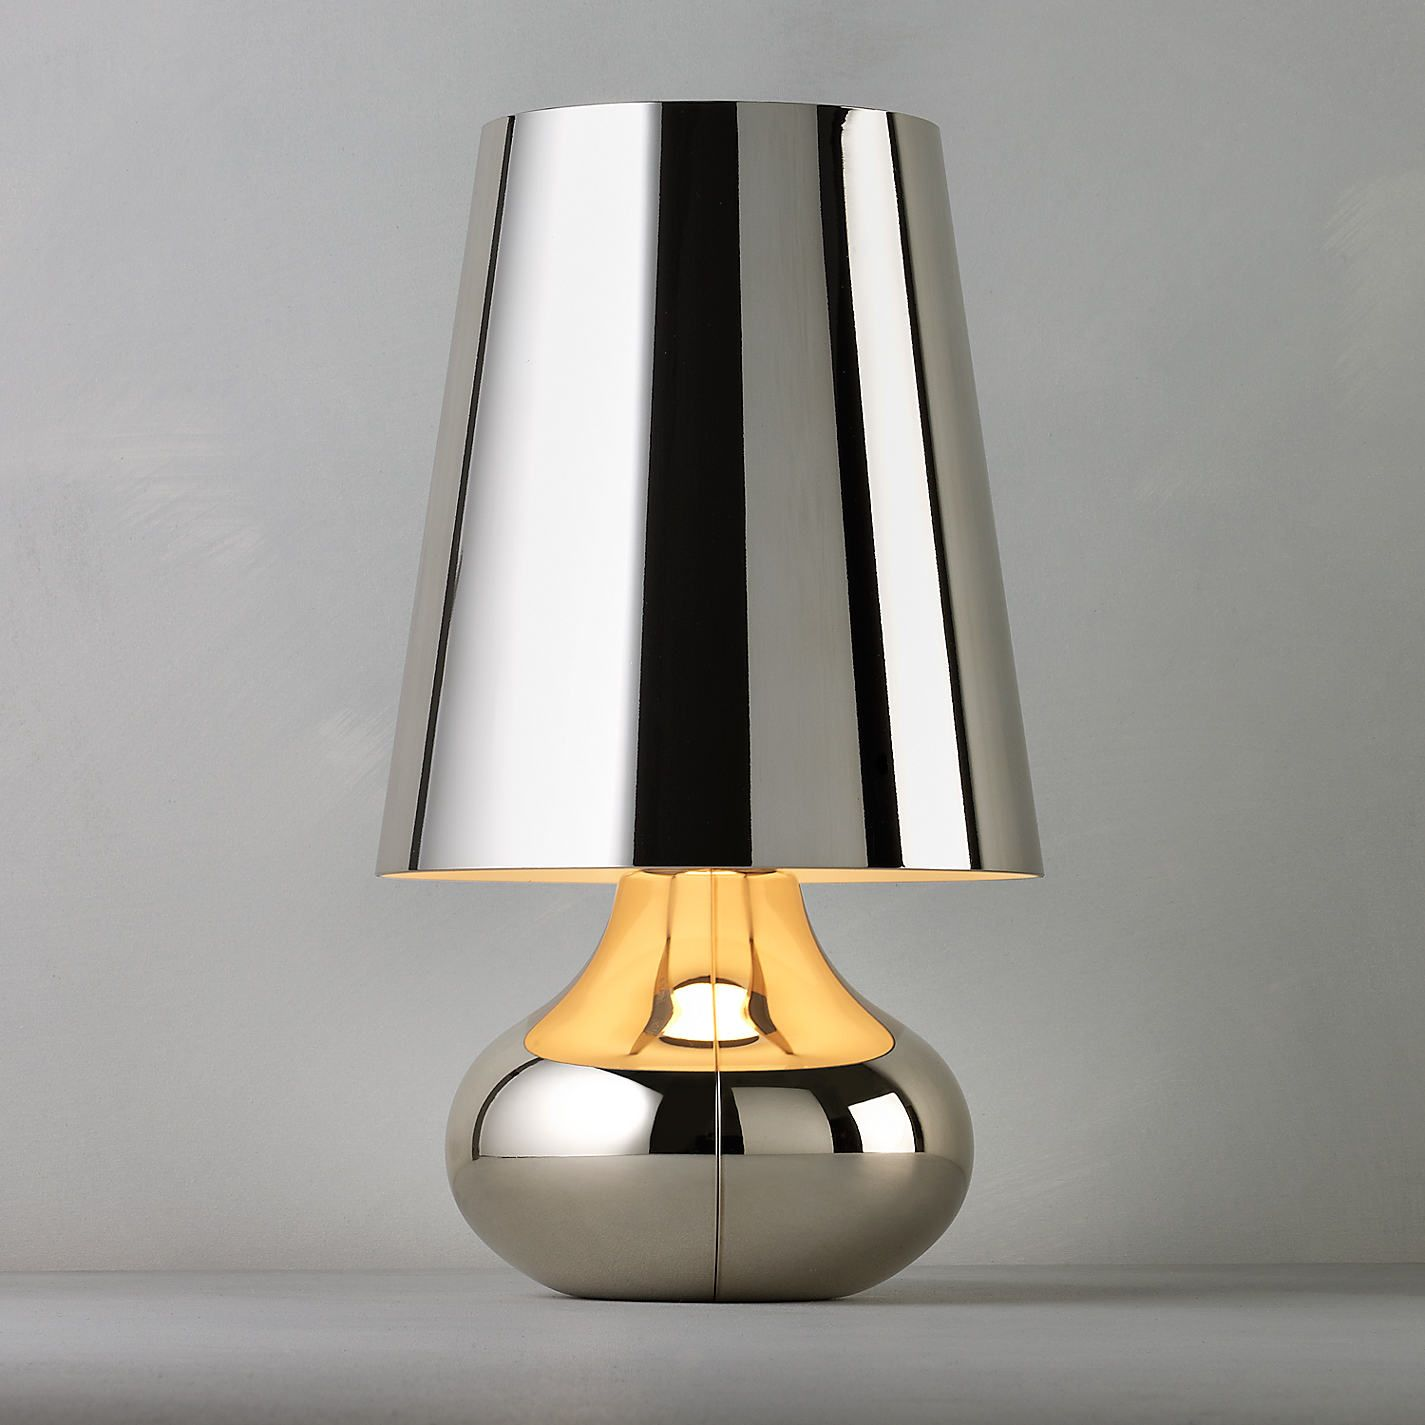 Buy kartell cindy table lamp platinum john lewis table lamp buy kartell cindy table lamp platinum john lewis geotapseo Image collections